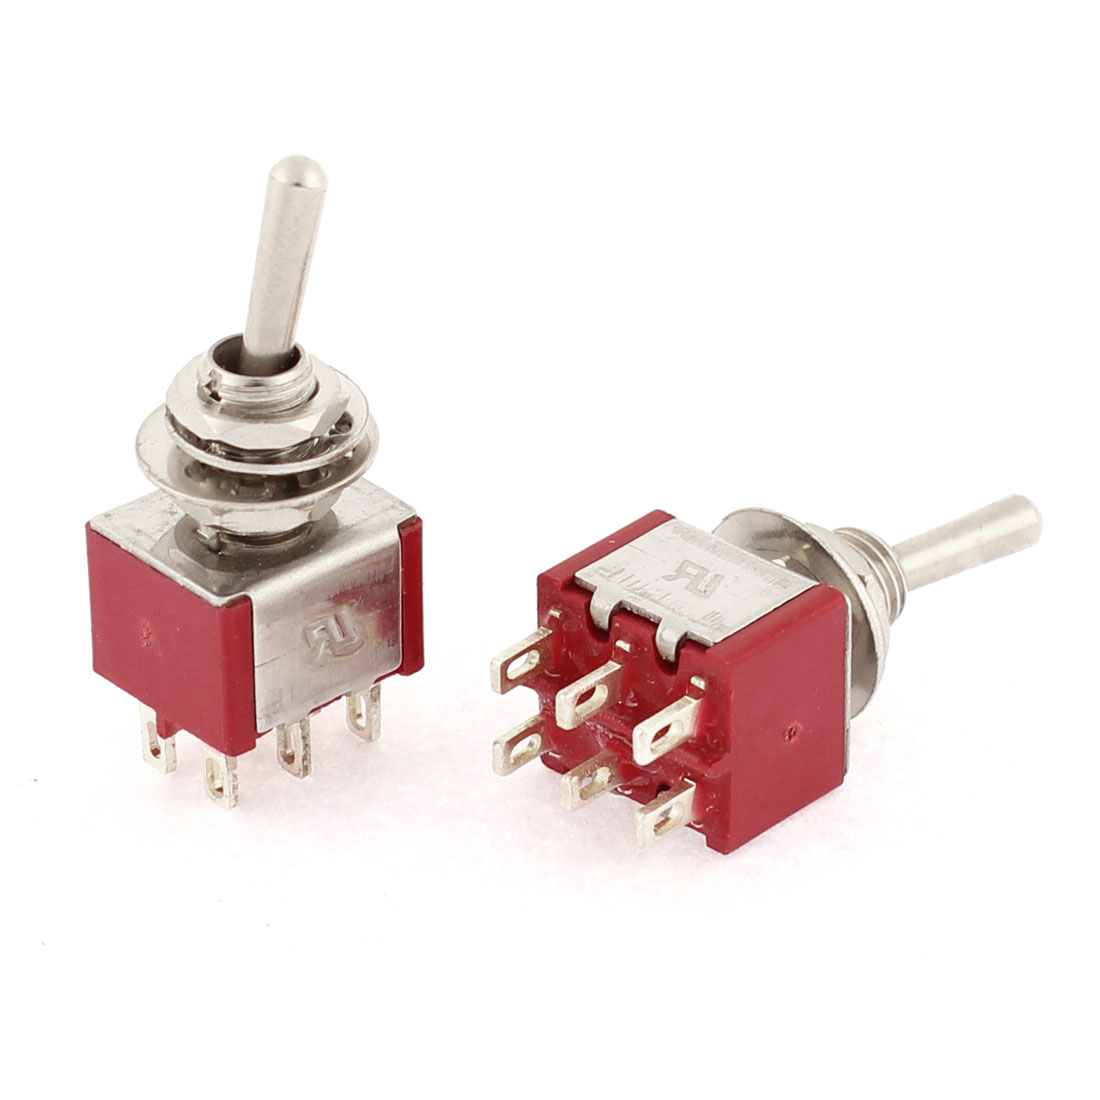 2pcs AC 250V 2A 120V 6A 2 Position ON/ON 6 Terminals M6 Panel Mounting DPDT Latching Miniature Toggle Switch